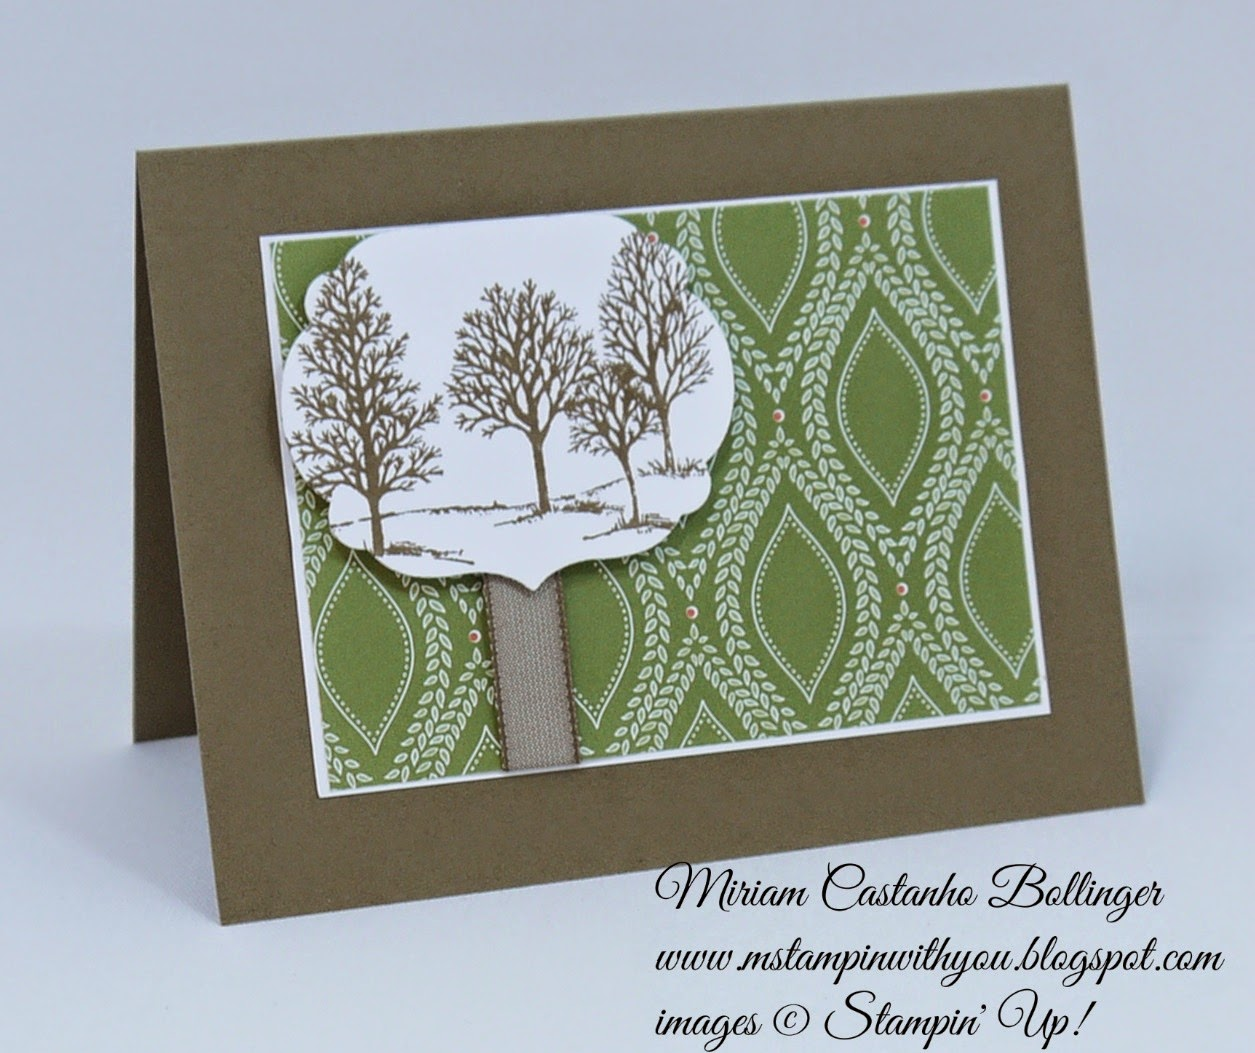 Miriam Castanho Bollinger, mstampinwithyou, stampin up, demonstrator, ppa, pp, park lane dsp, lovely as a tree, labels collection, big shot, su